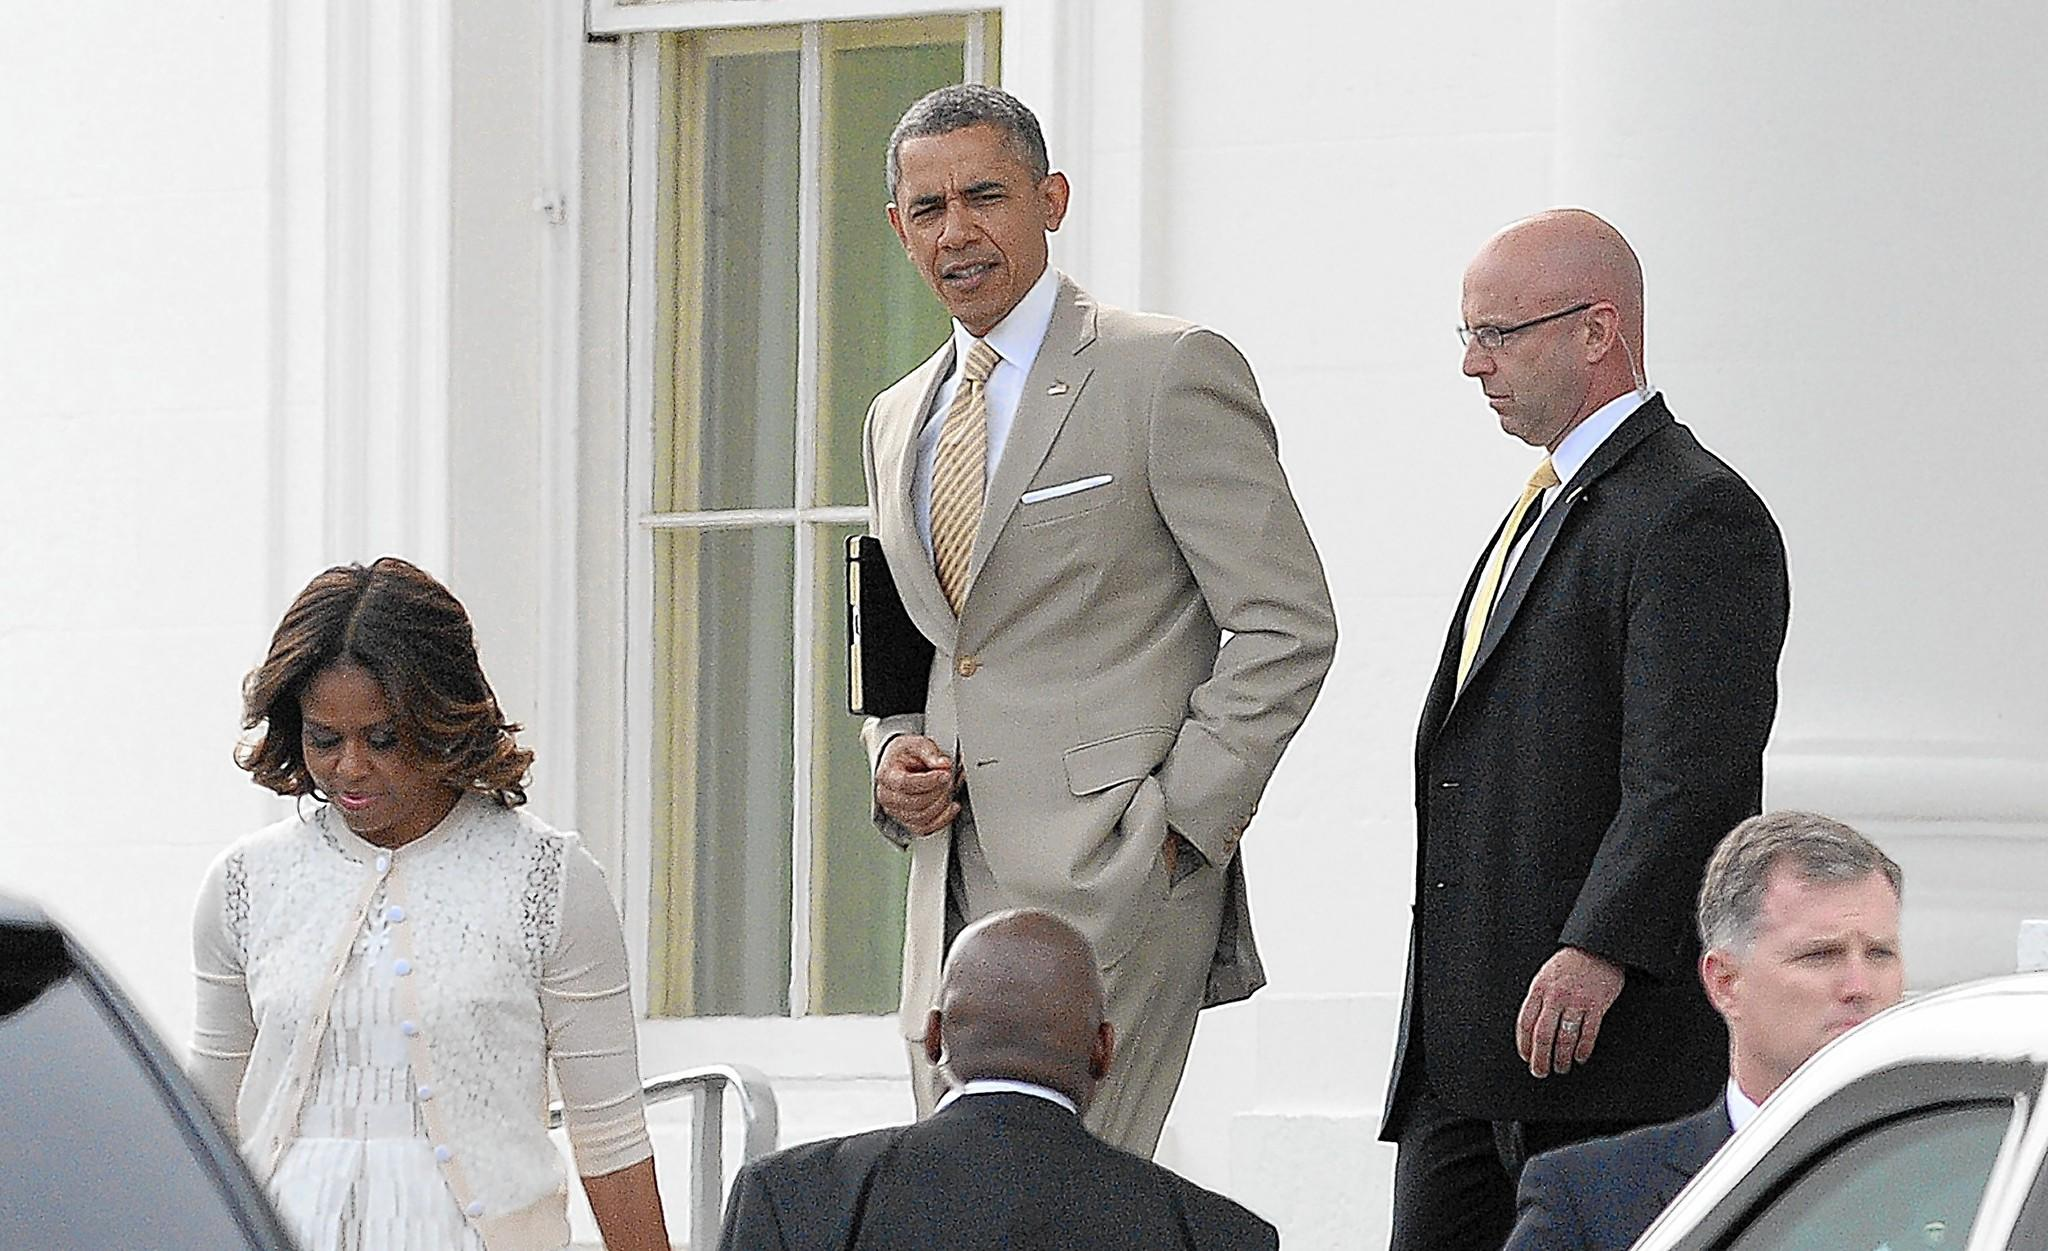 President Obama leaves the White House with Michelle to attend an Easter service in Washington. The president is to set out on a tour of Asia later this week.